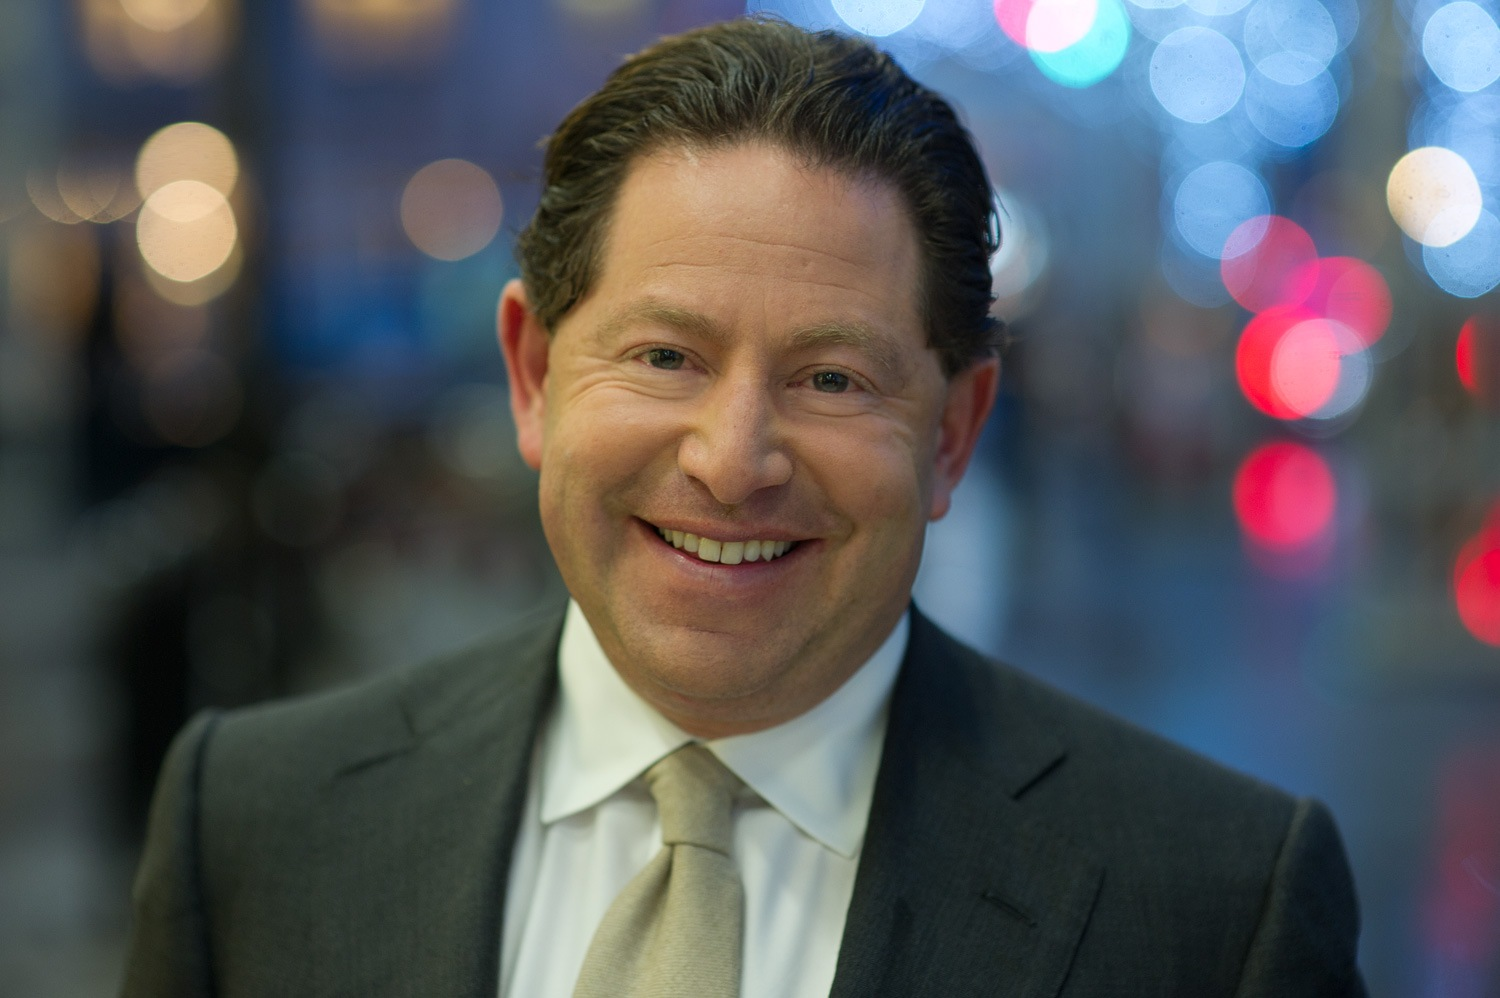 Activision Blizzard CEO Bobby Kotick Named to Influential Sports Business List